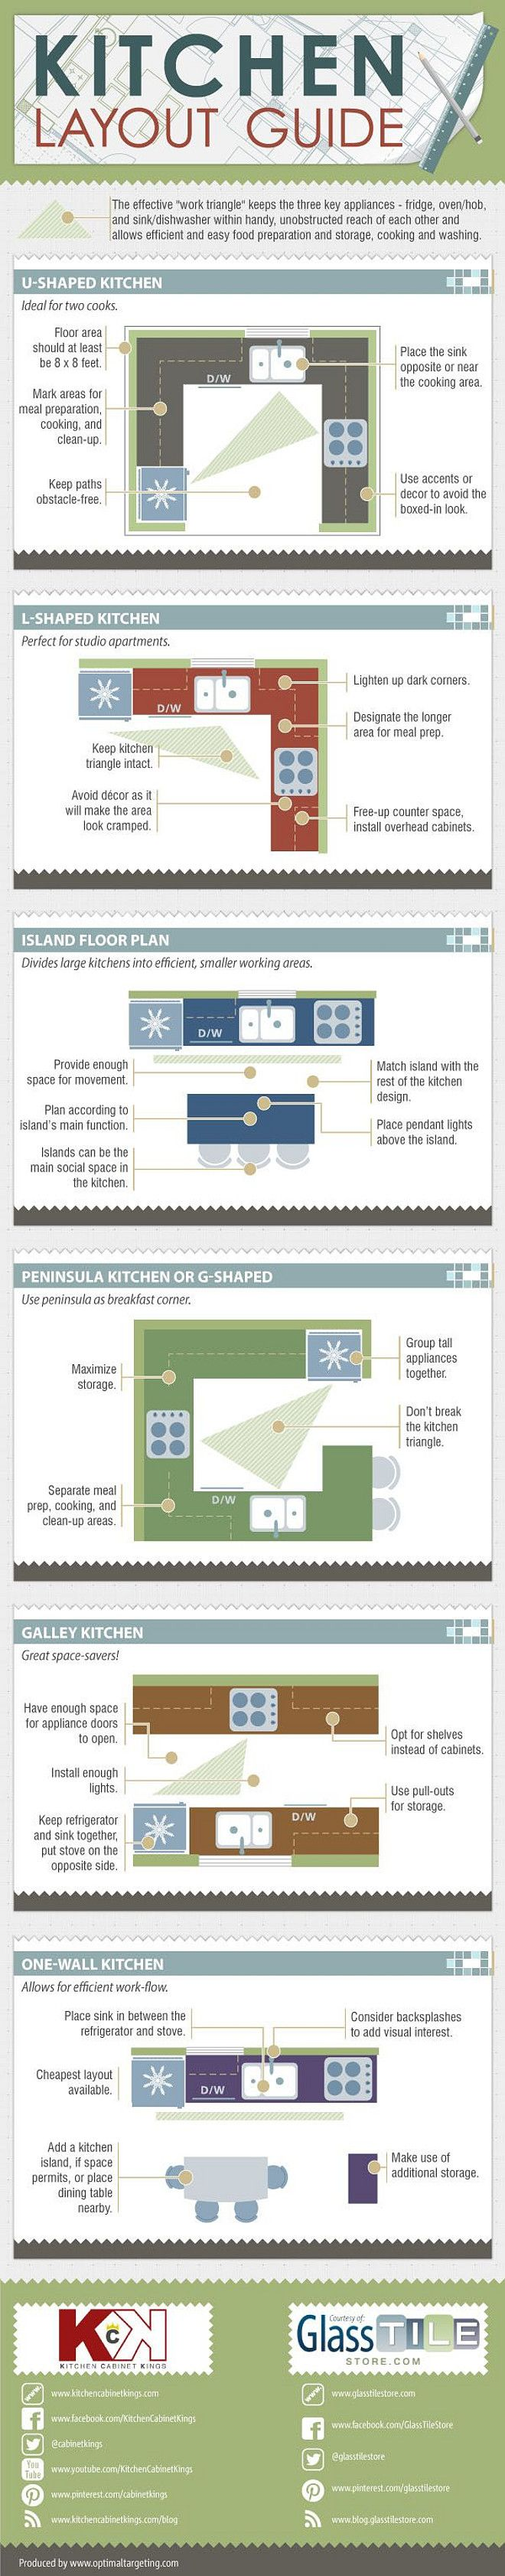 Interior Design Tips On Kitchen Layout Guide Kitchenlayout Interiordesigntips L Shape